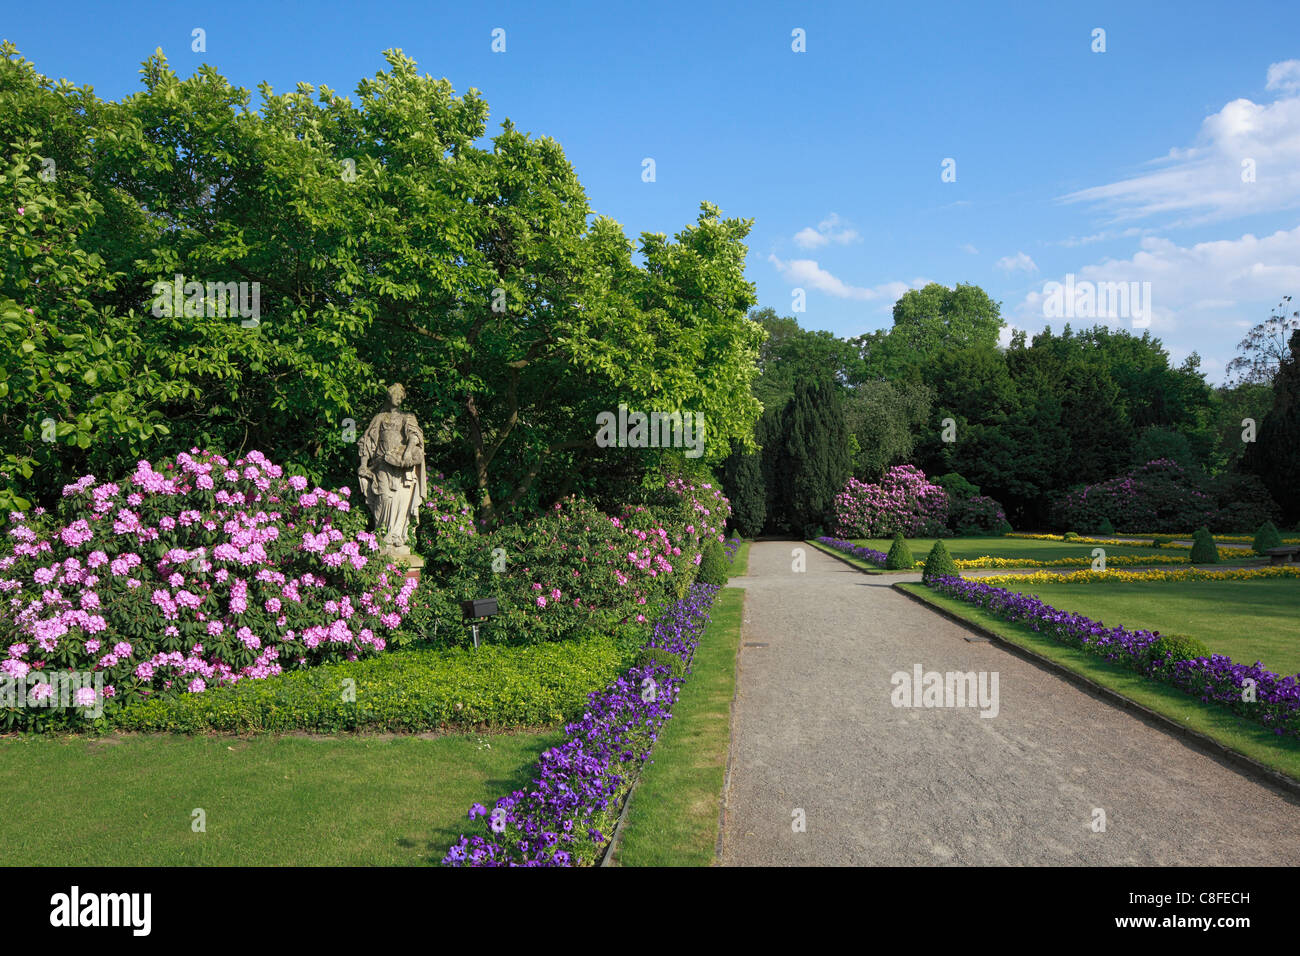 Germany, Europe, Gelsenkirchen, Ruhr area, North Rhine-Westphalia, Bür, castle, mountains, moated castle, hotel, - Stock Image